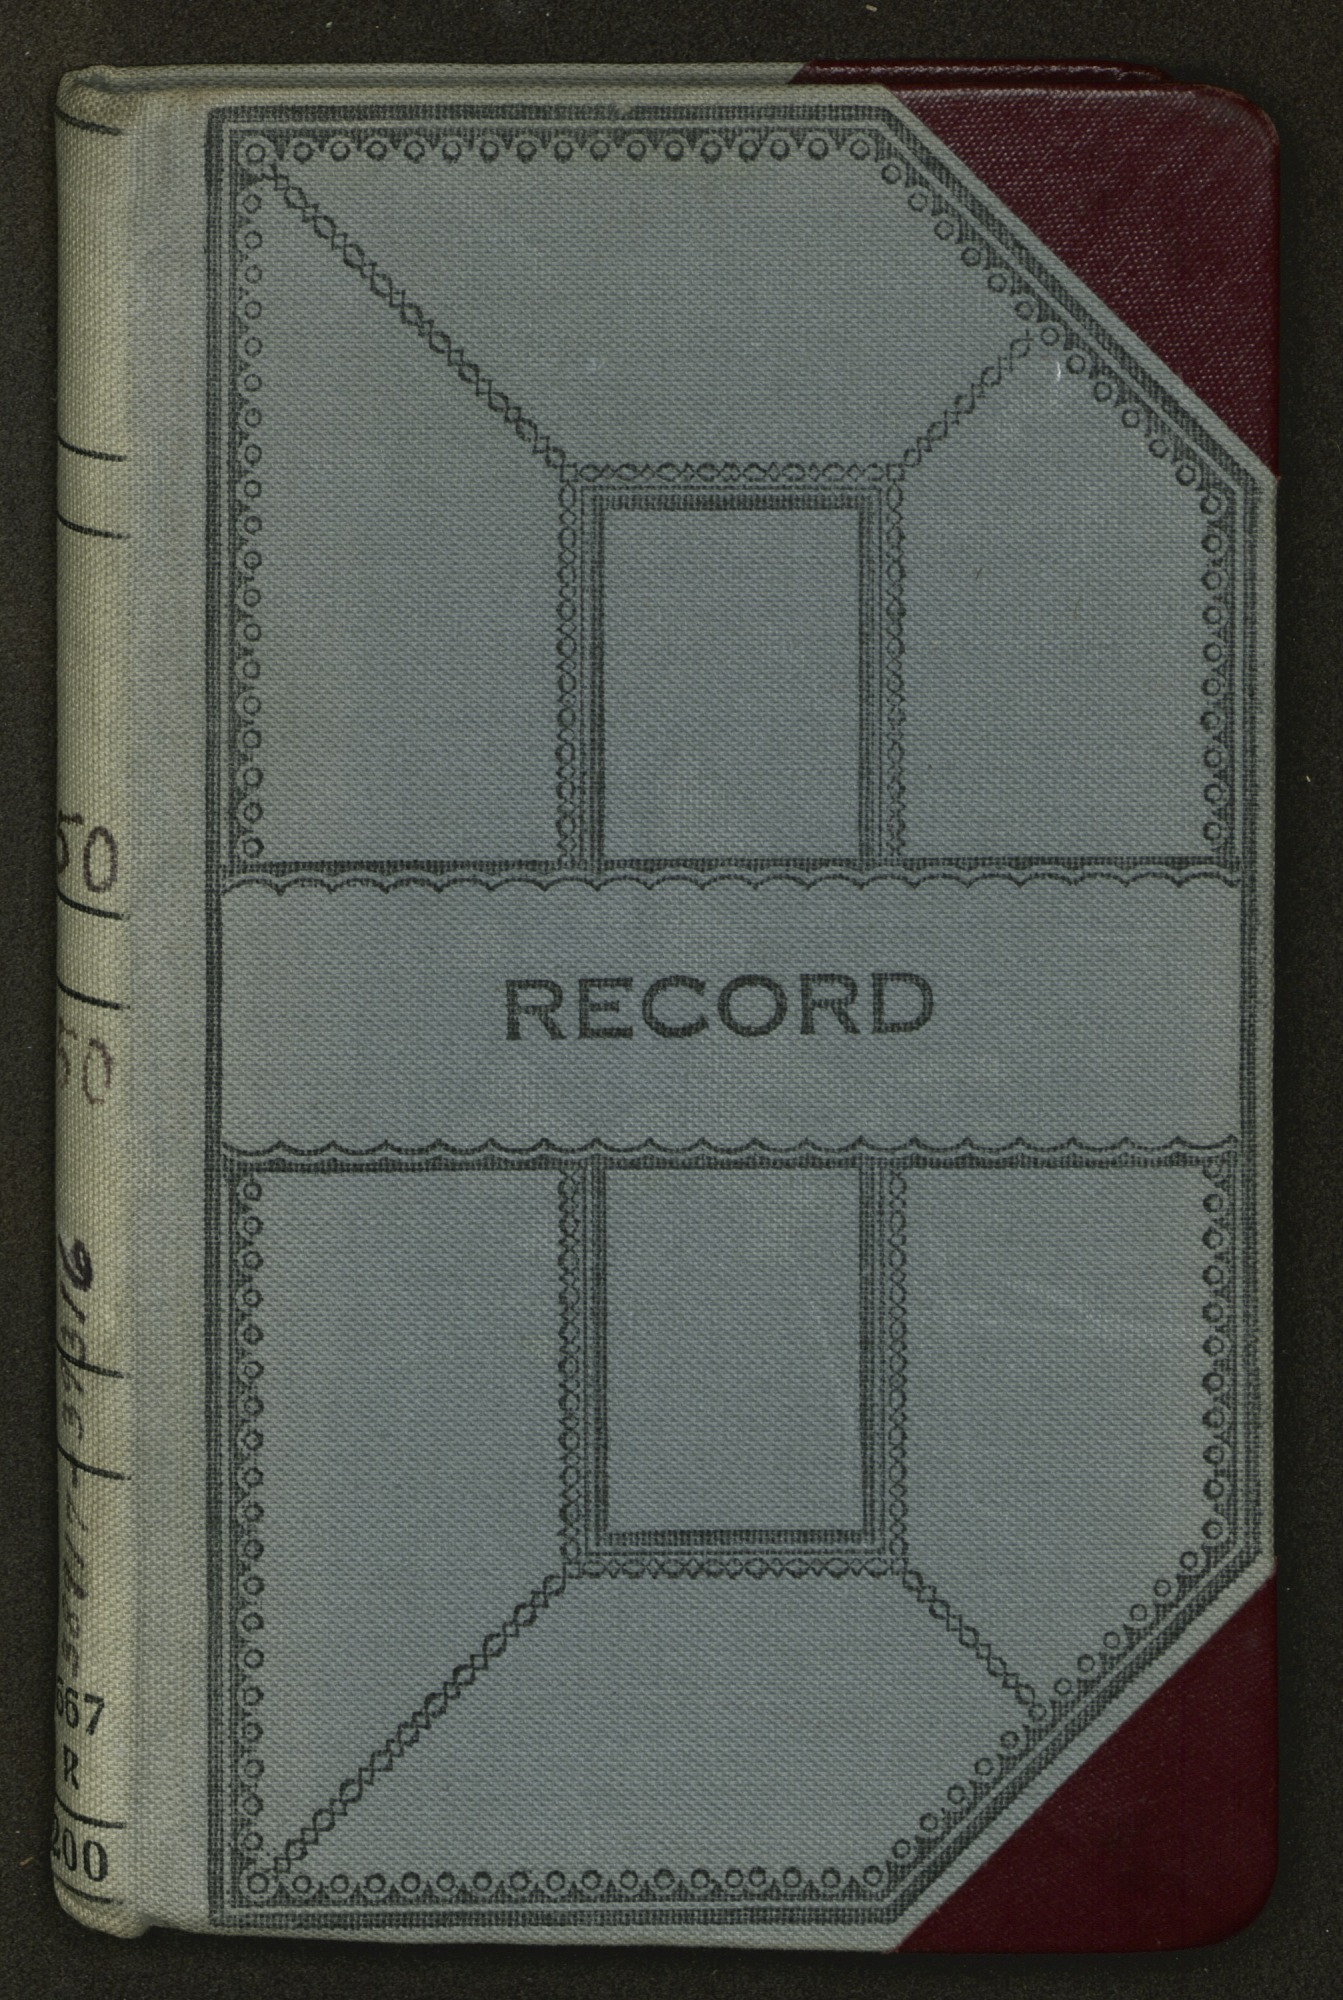 F. R. Fosberg collection book no. 50, begin with # 38917, end with # 39316